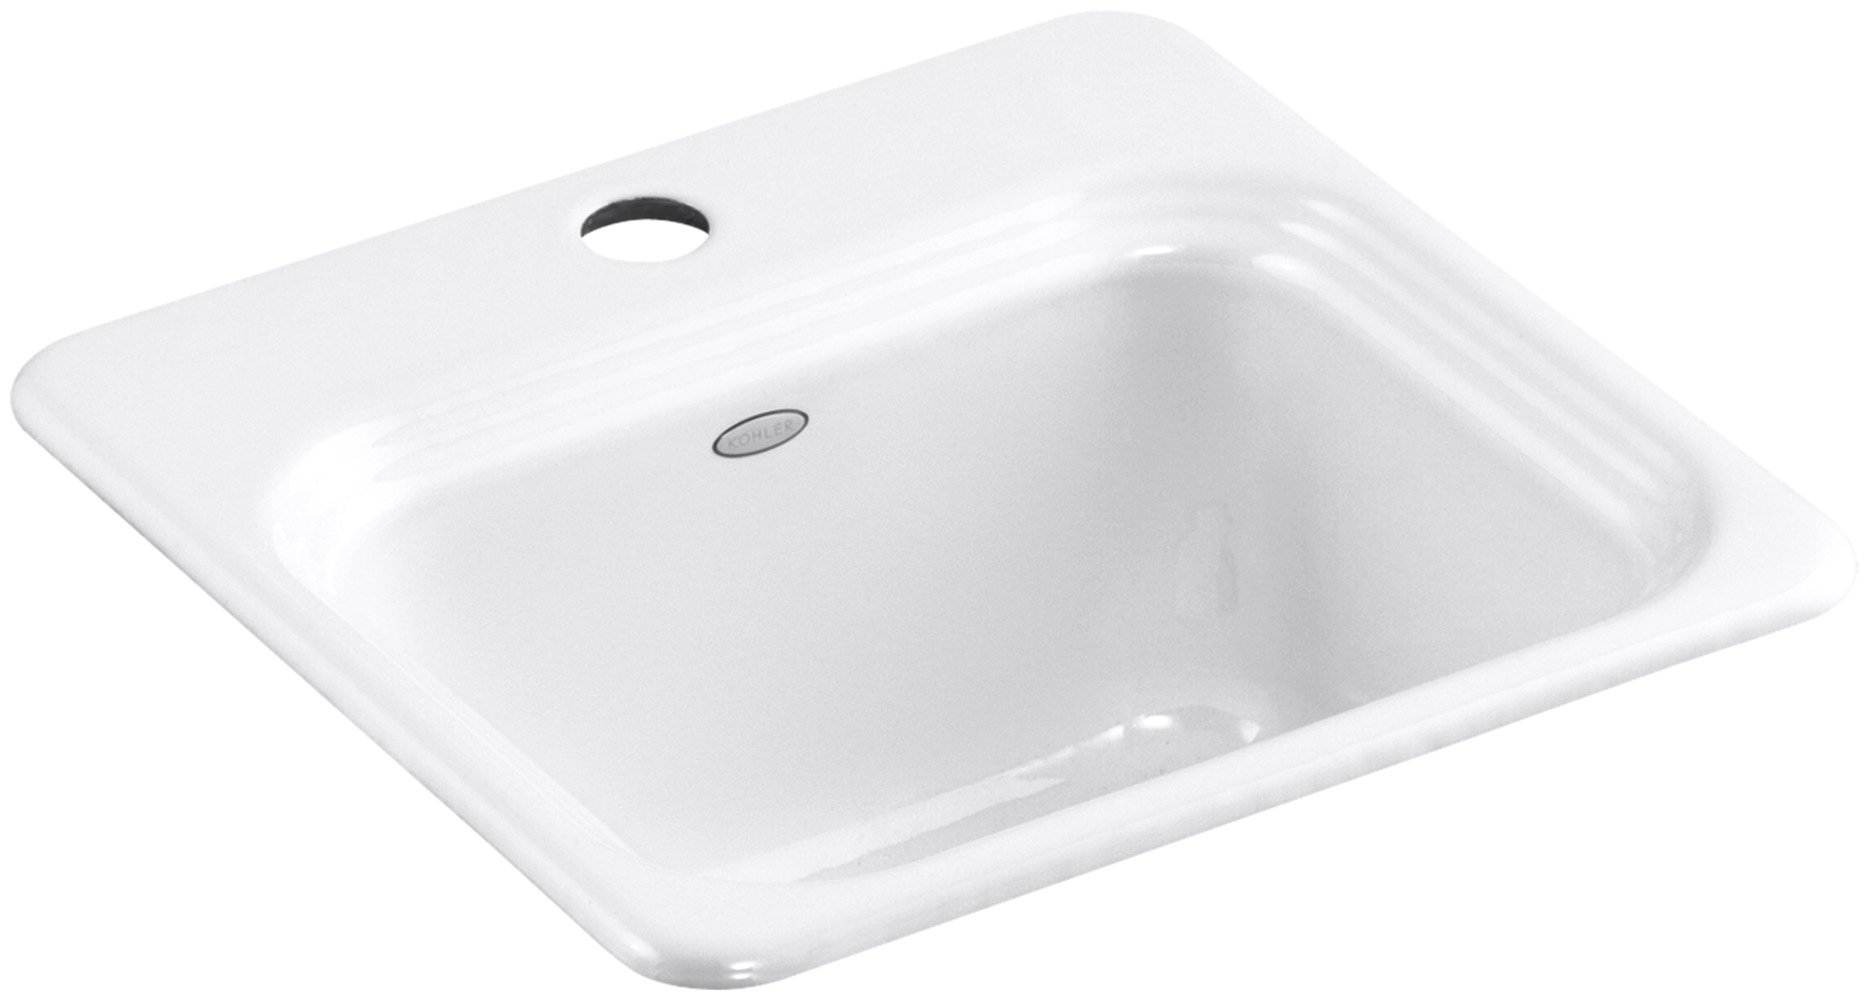 KOHLER K-6579-1-0 Northland Self-Rimming Entertainment Sink, White by Kohler